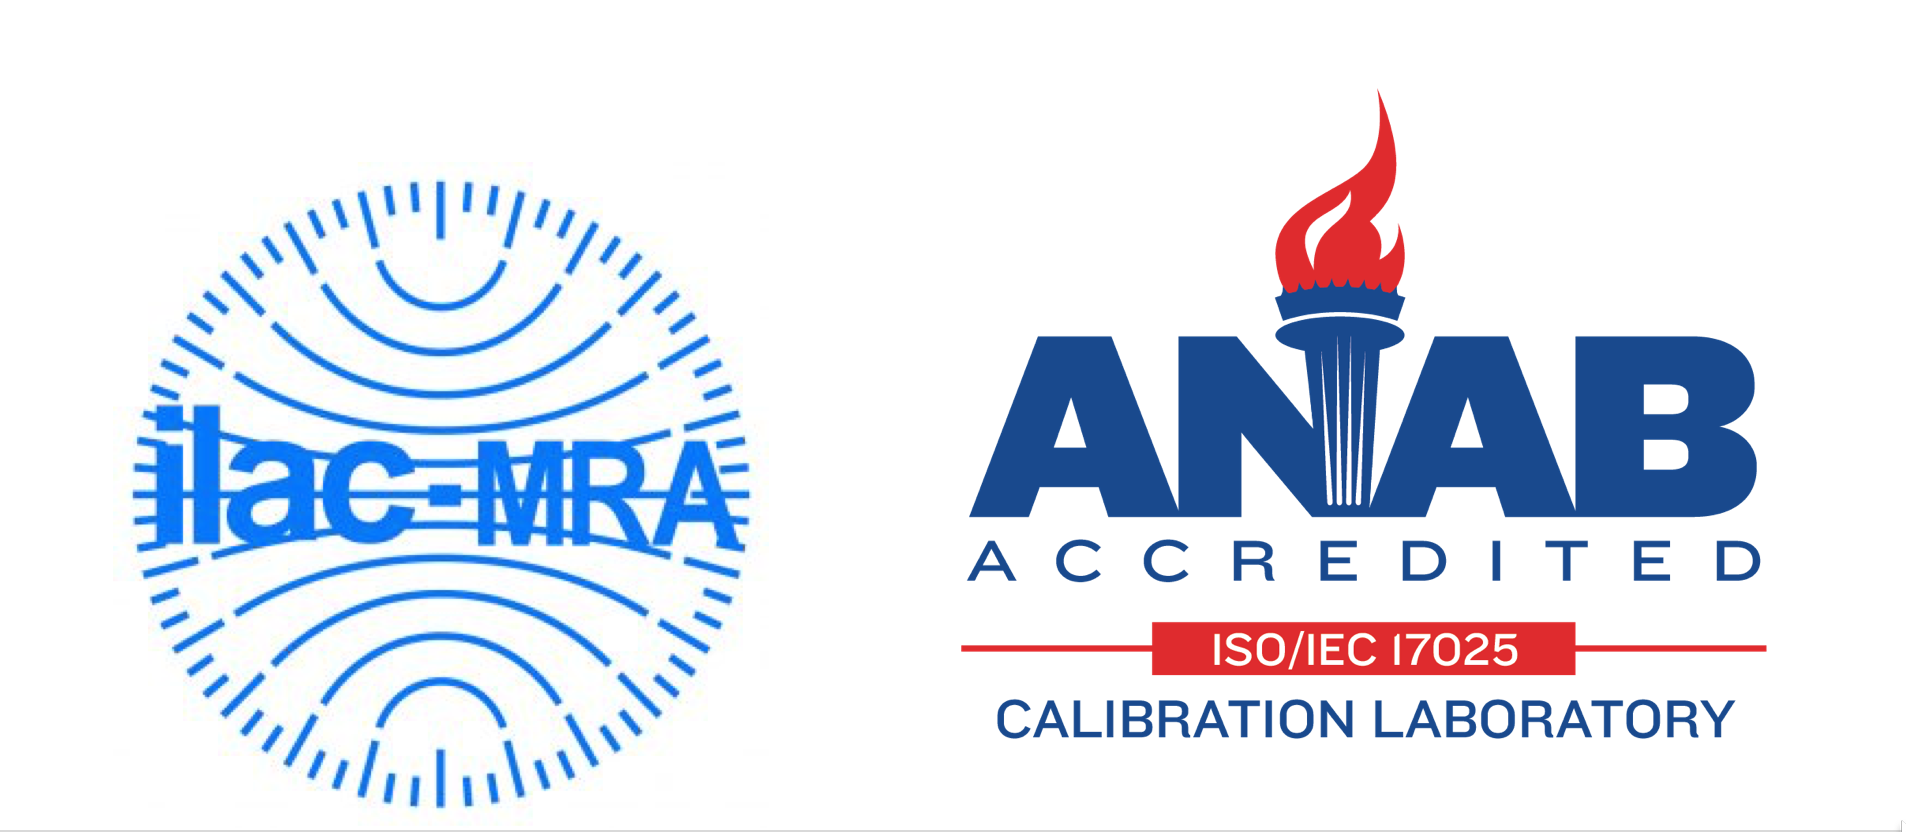 ILAC_ANAB_Alliance_Calibration_ISO_17025_Accredited